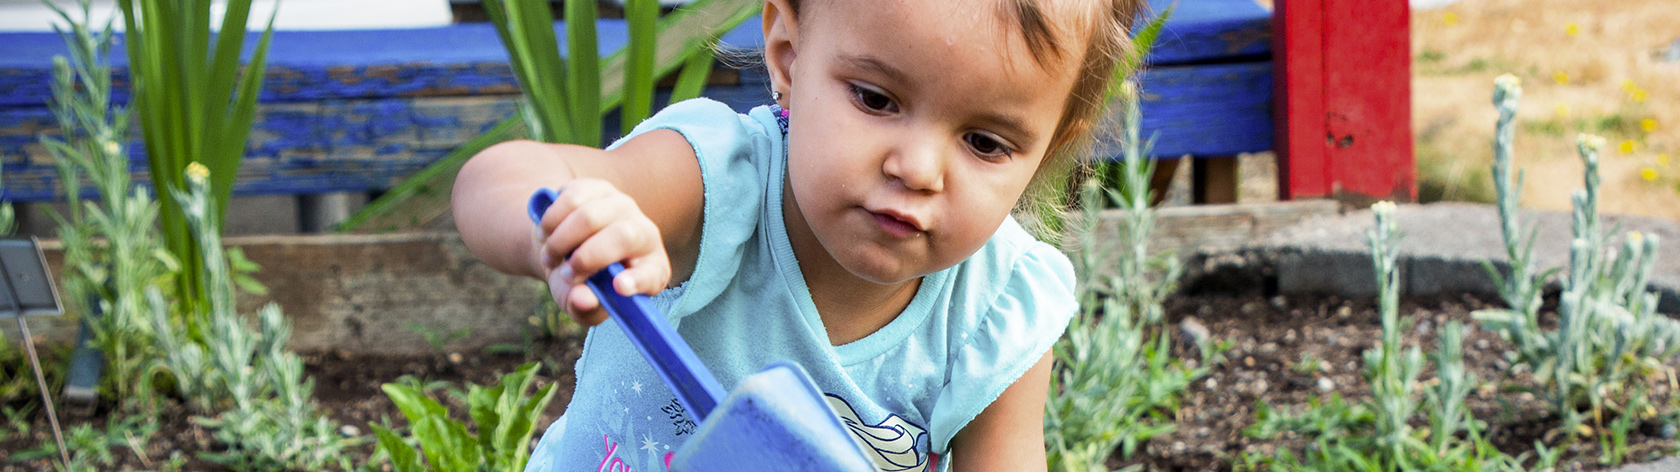 Preshool girl digging in a garden with a hand-held plastic shovel